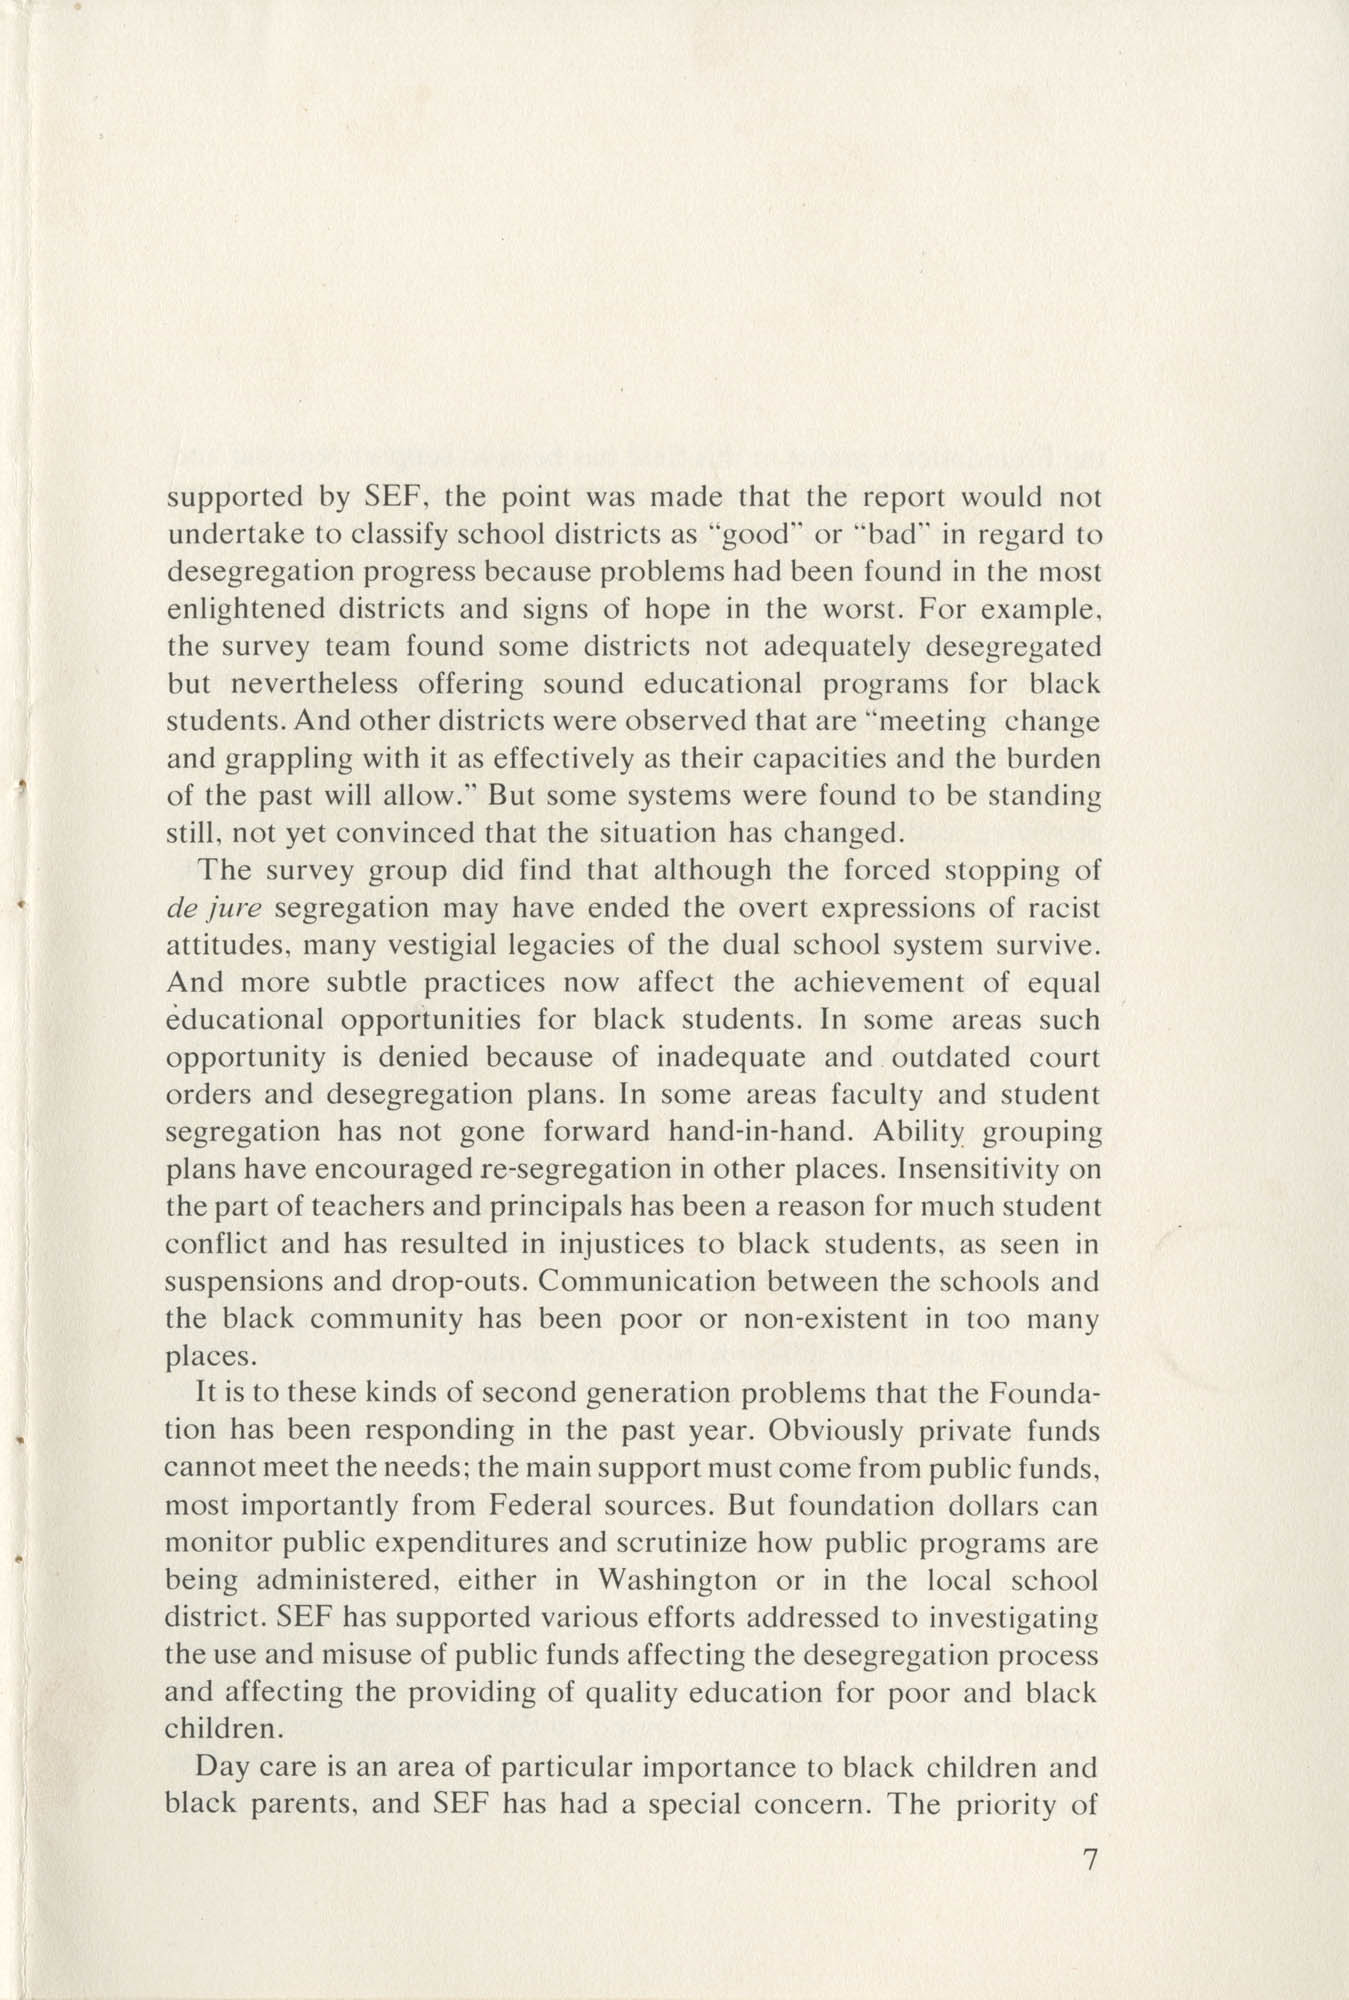 Southern Education Foundation, Annual Report 1971-1972, Page 7